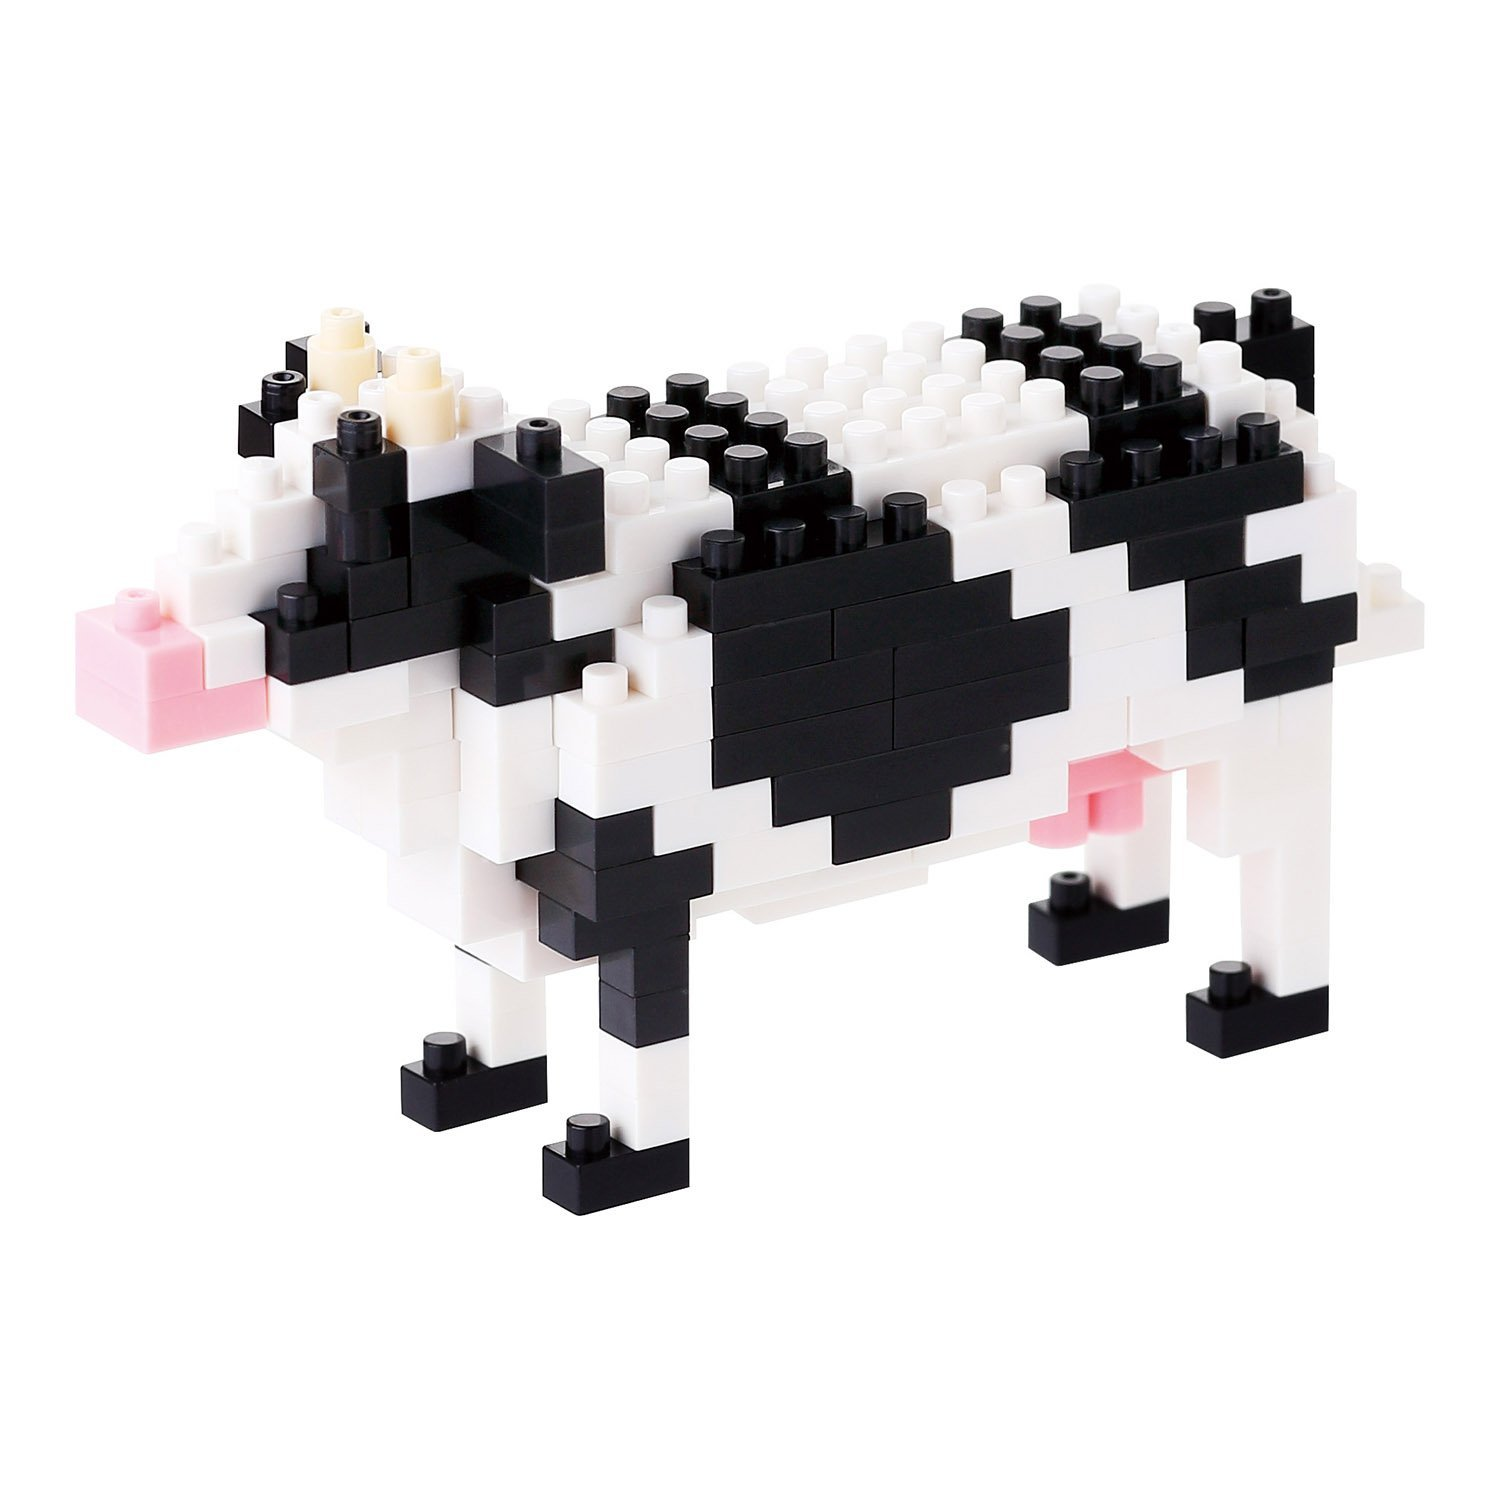 Nanoblock Cattle Cow Building Kit, Officially Licensed by Kawada By Kawada by